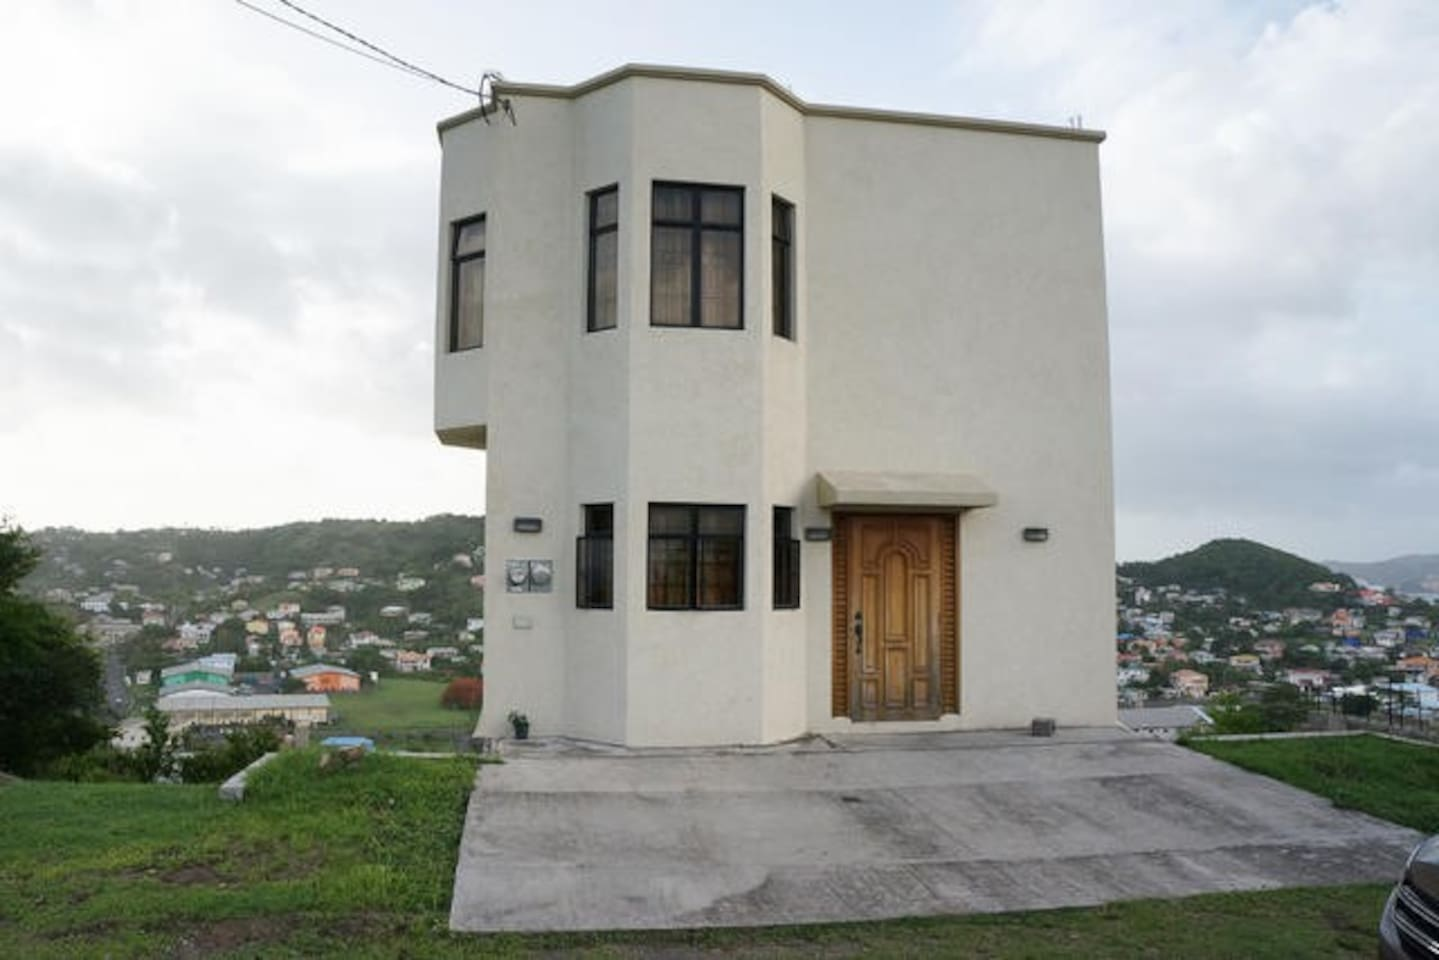 House on the hill, modern, very clean, close to airport, beach, shopping city. Safe secure neighborhood, regularly patrolled by University security, burglar bars and mosquito mesh on all windows